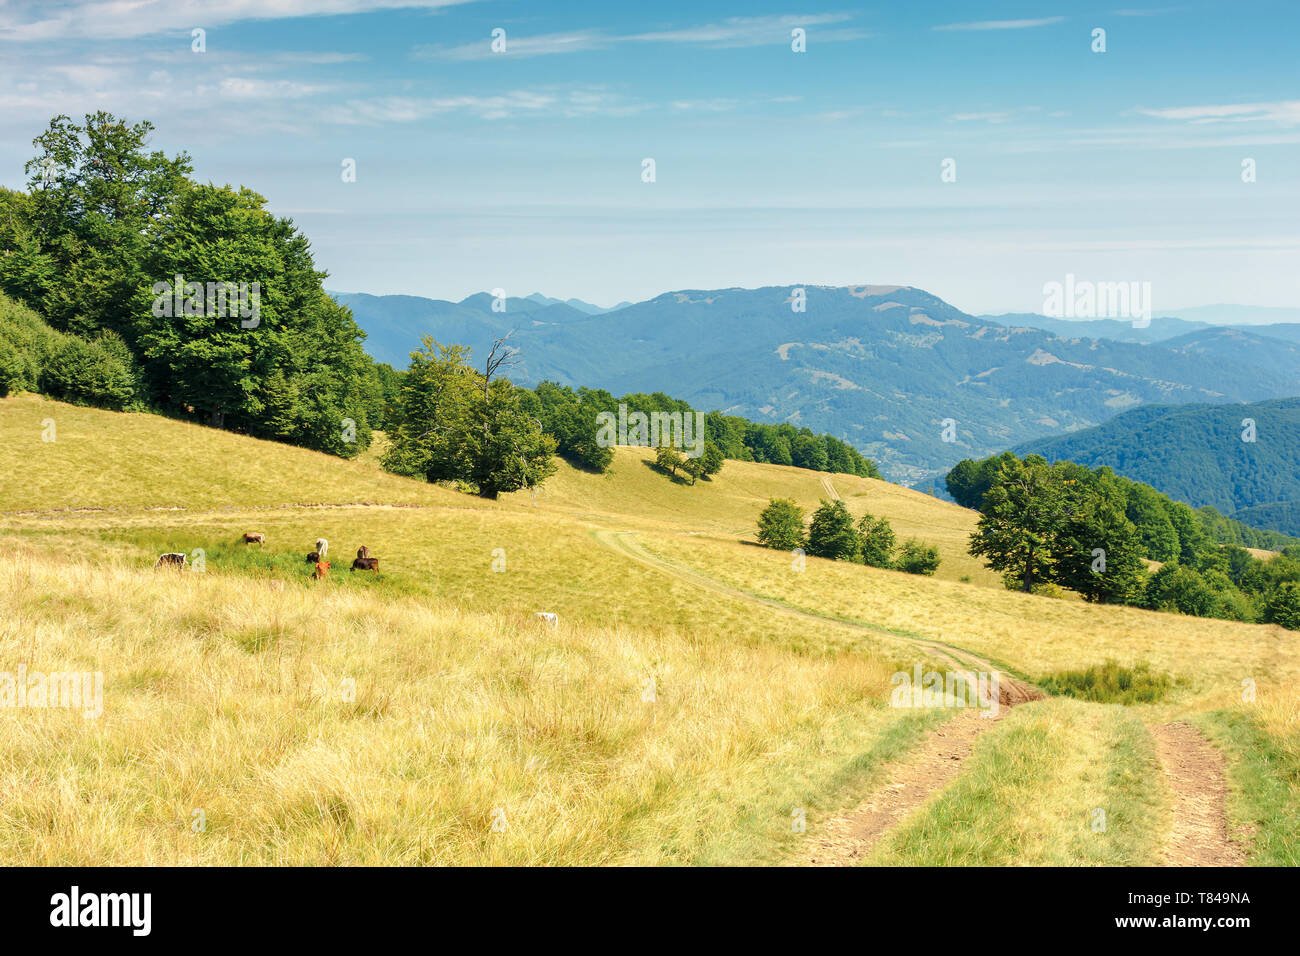 country road through grassy meadow in mountains. nature scenery with beech trees in the distance. sunny late summer landscape with clouds on a blue sk - Stock Image